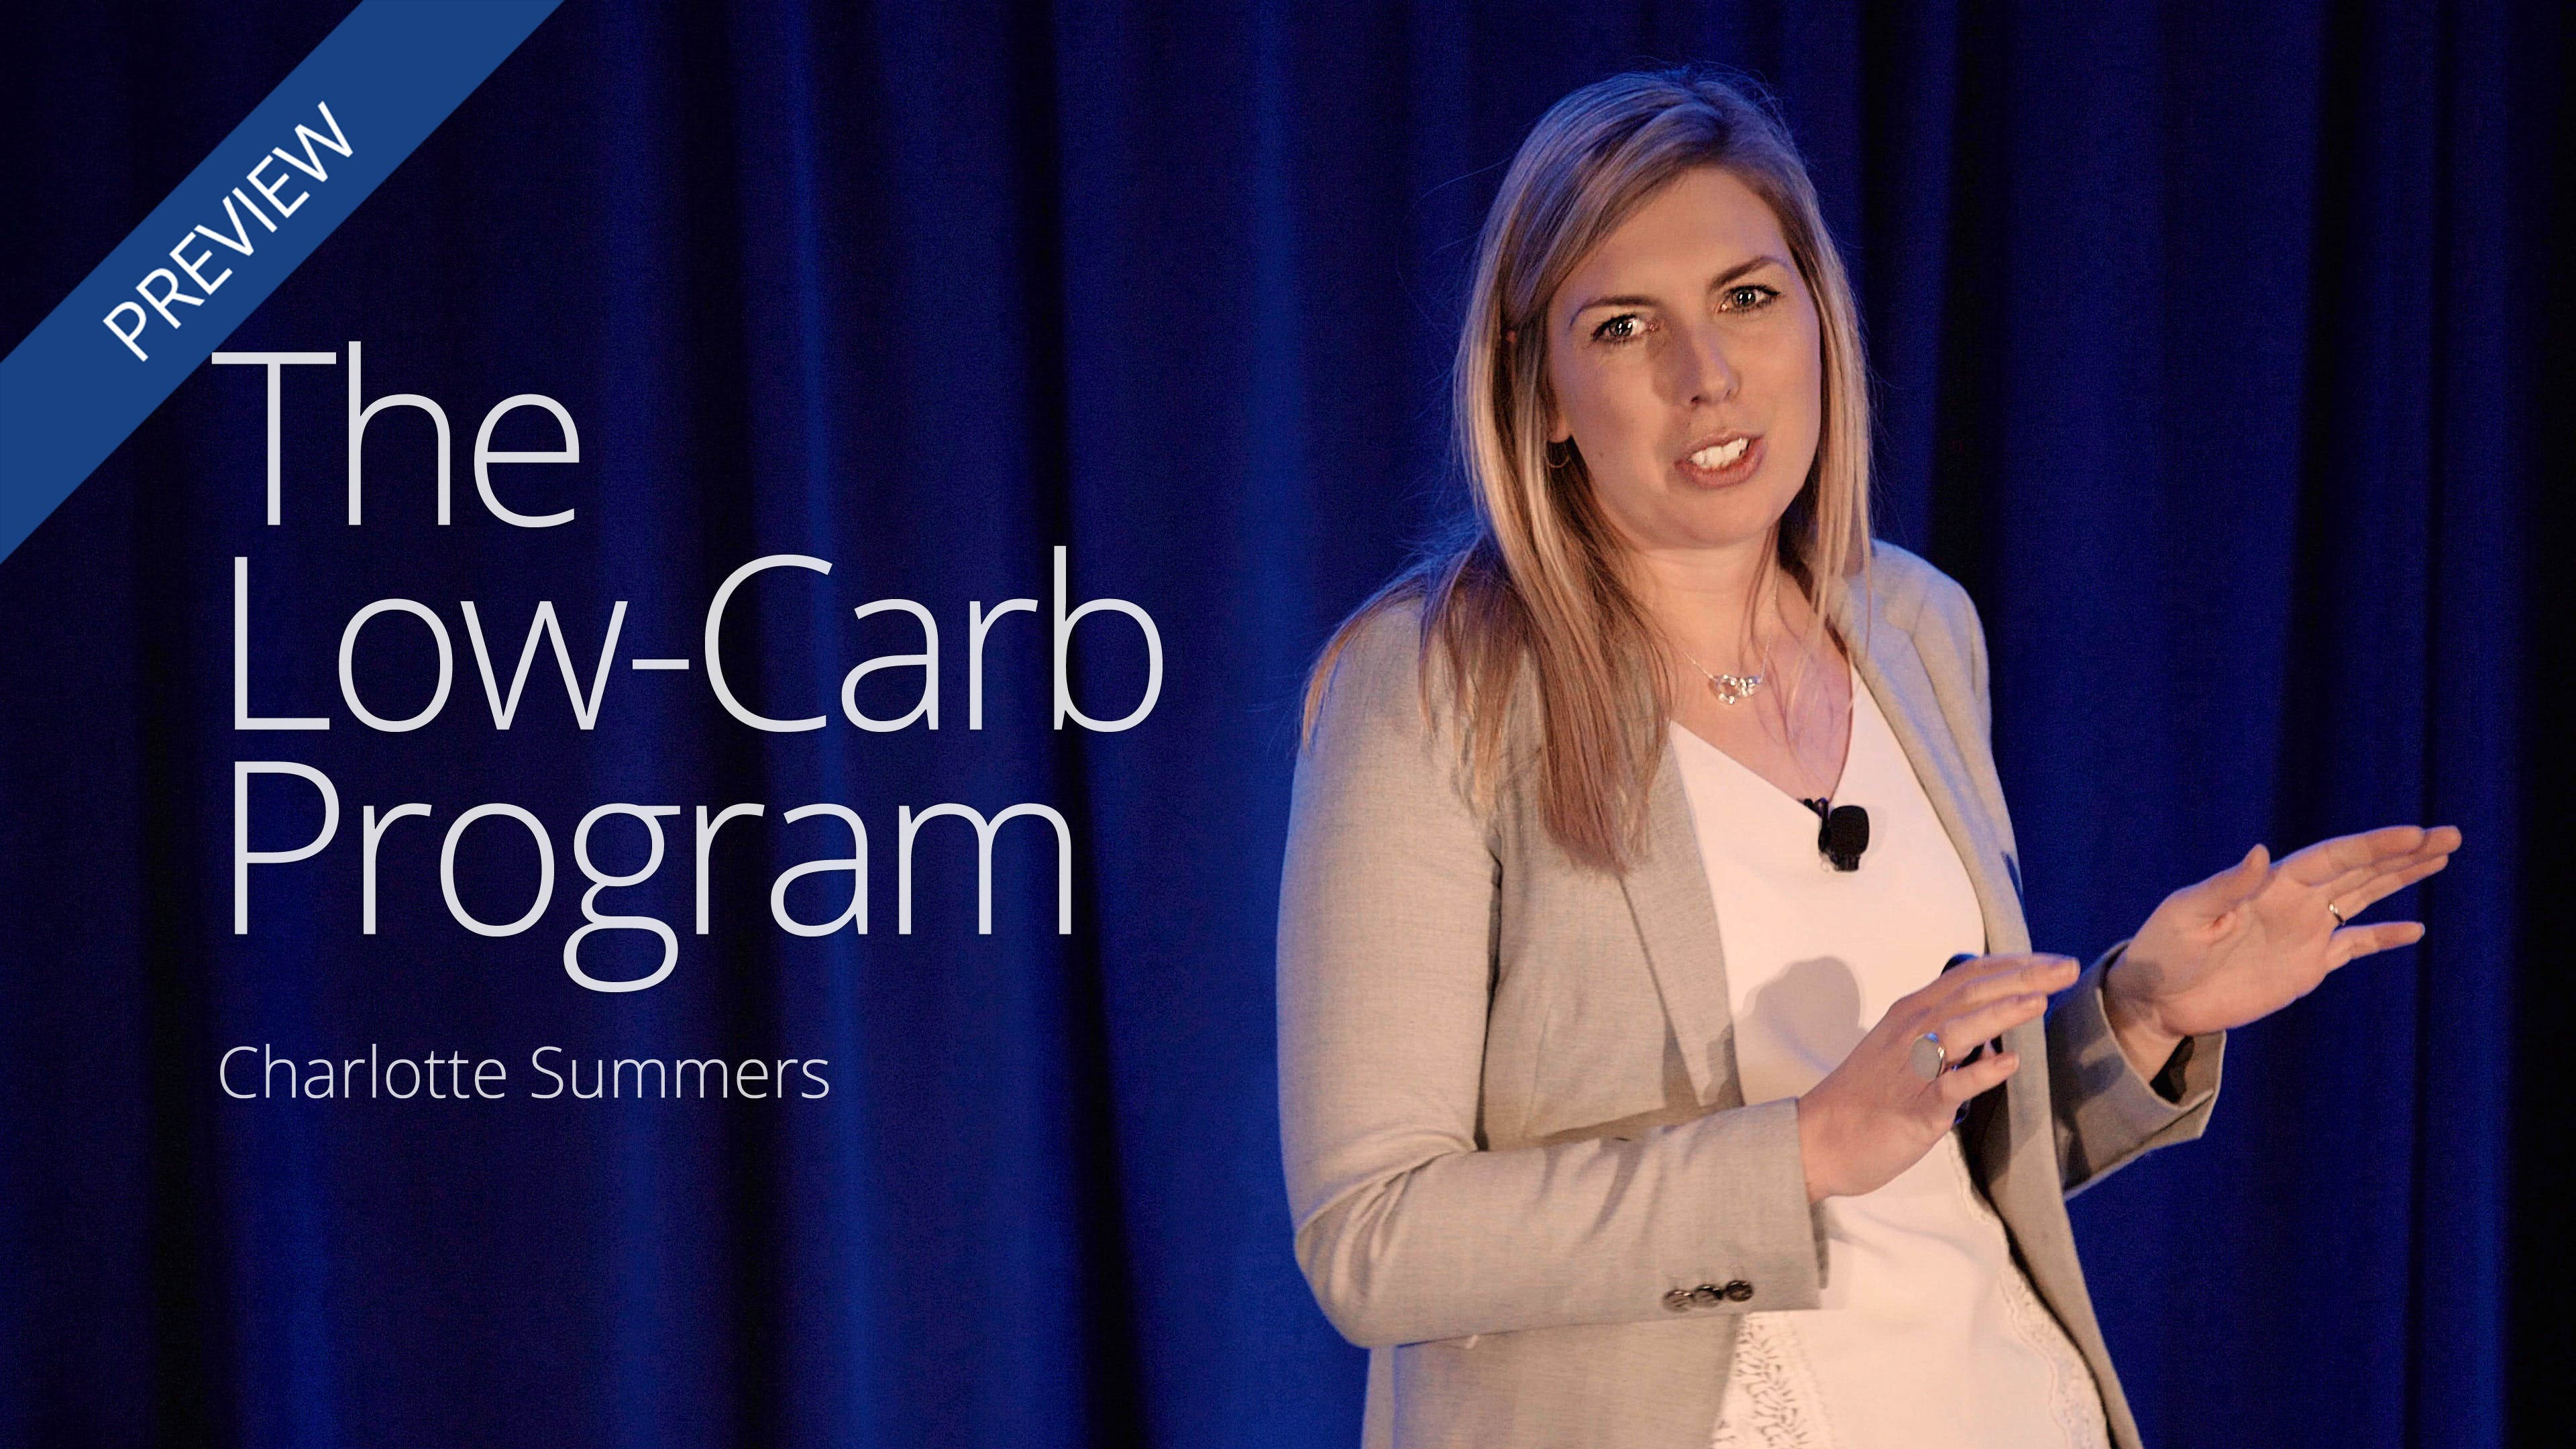 The Low-Carb Program